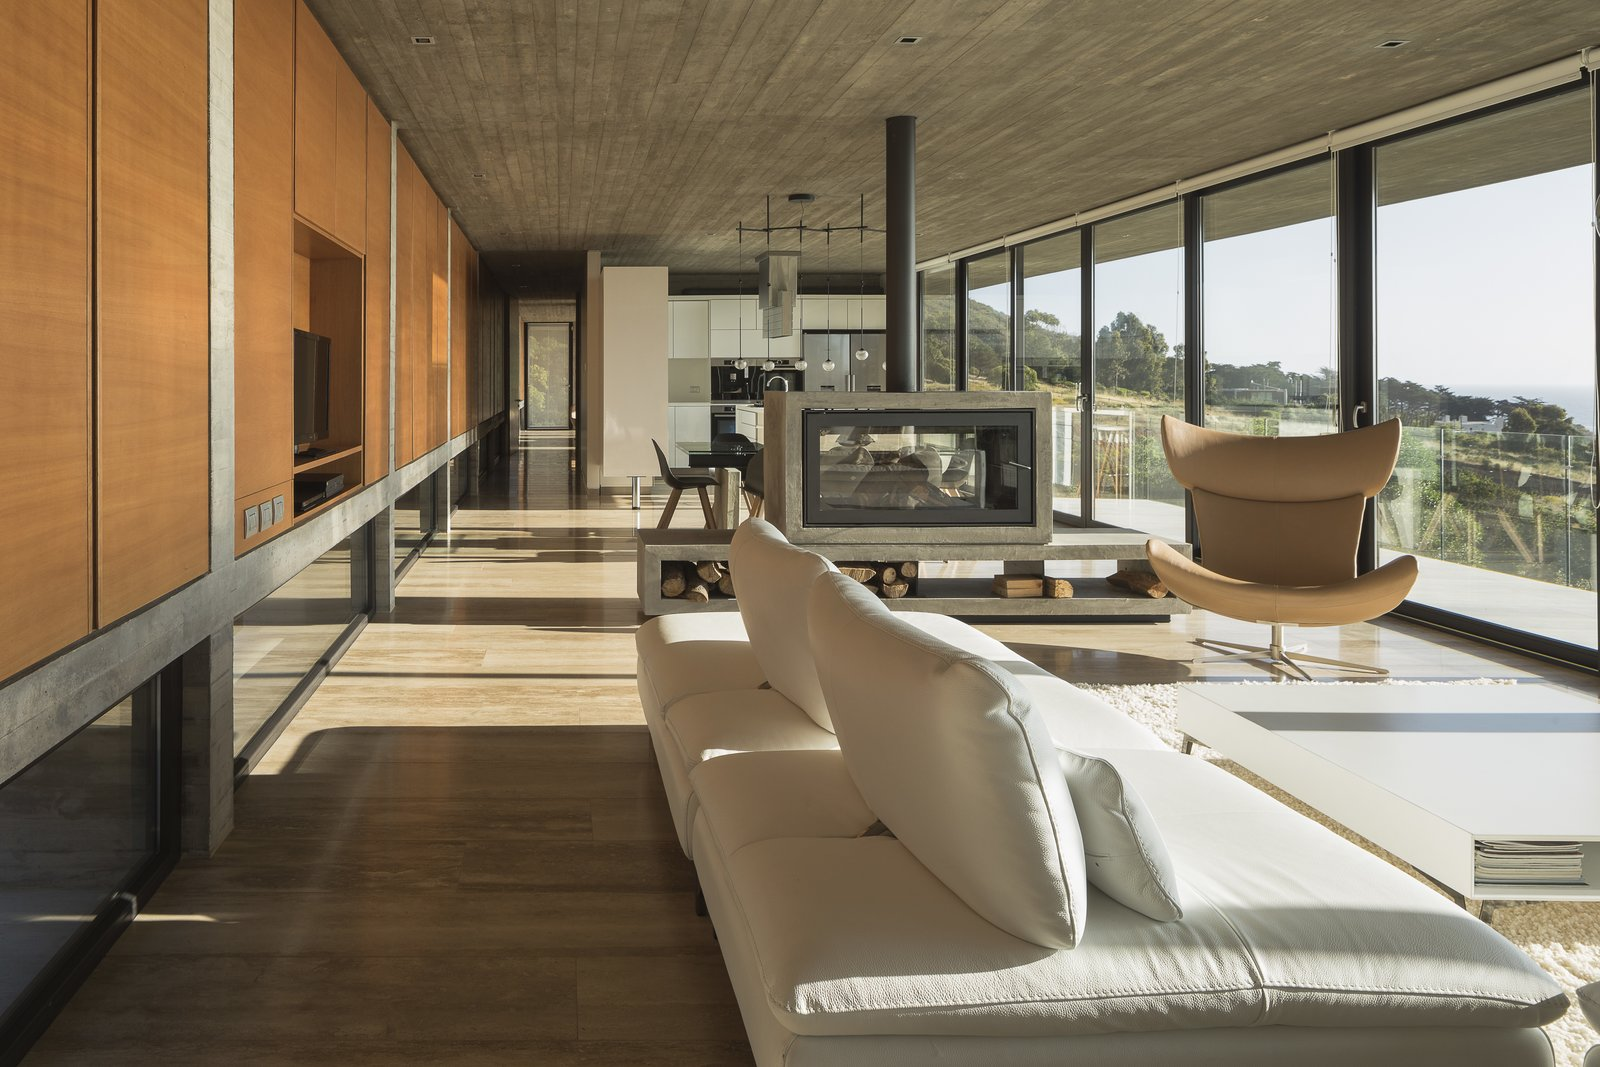 Living Room, Coffee Tables, Two-Sided Fireplace, Sofa, Chair, Recessed Lighting, and Rug Floor In the living areas, the inner surface of the massive beam-wall that frames the eastern façade is clad in wood, which adds a sense of warmth to counteract the coolness of the concrete.    Photo 7 of 14 in This Chilean Concrete Home Levitates Off a Coastal Slope